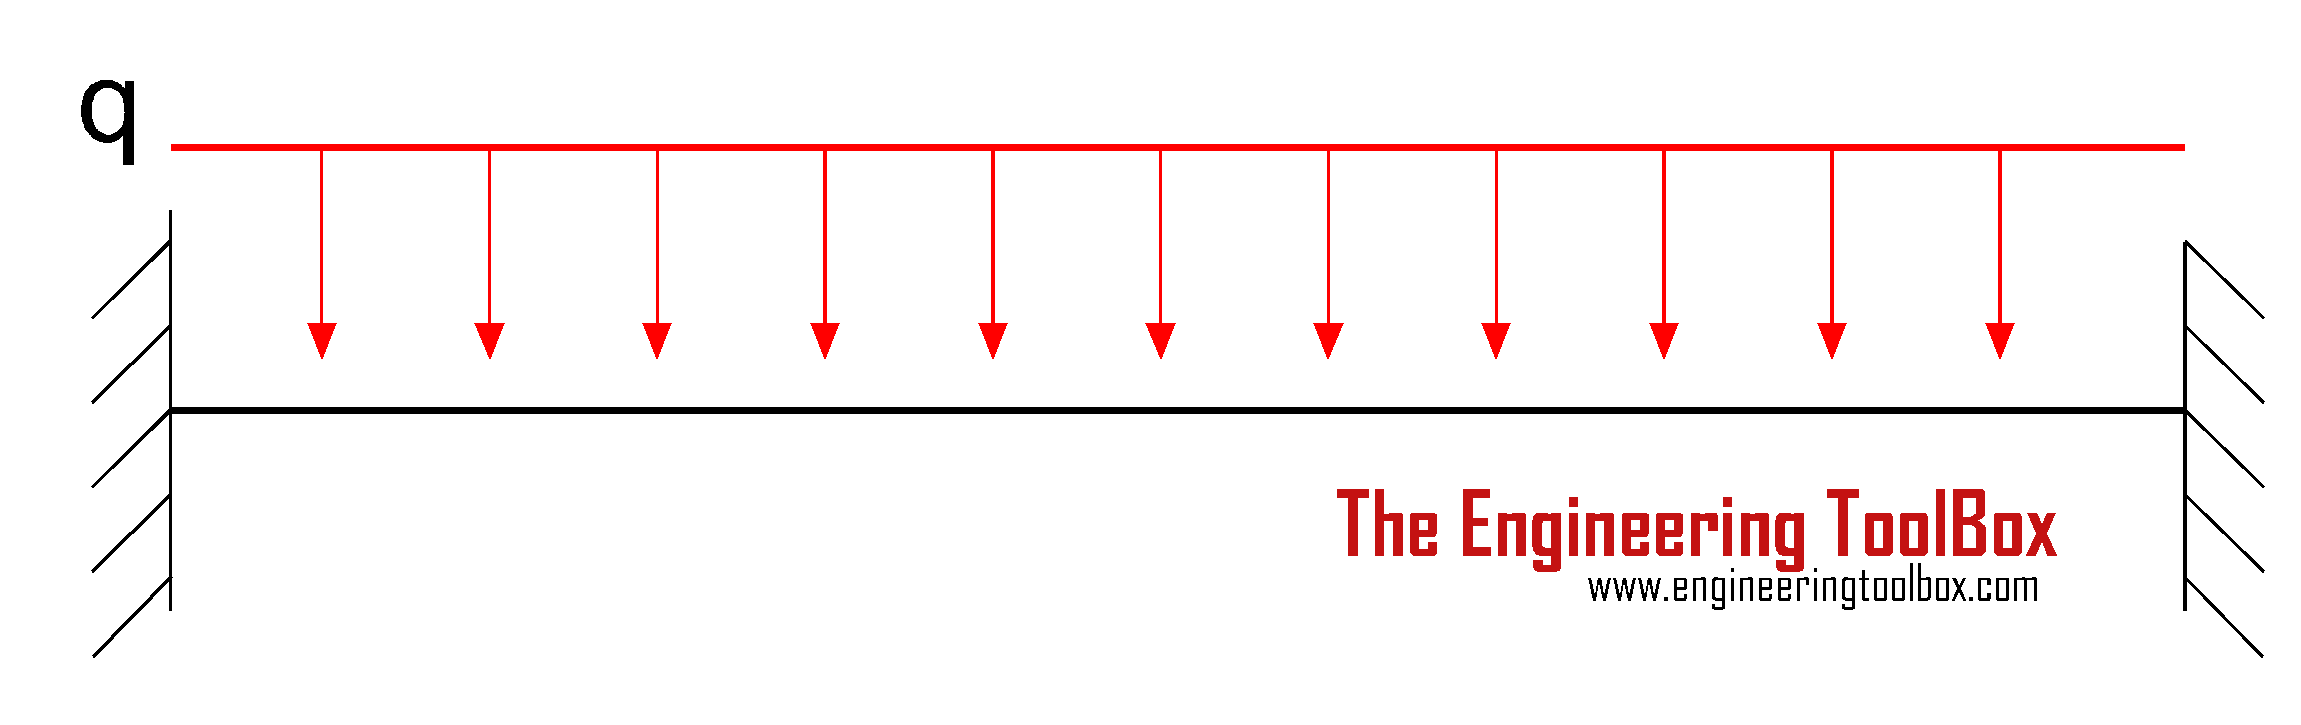 Vibration - structure with fixed ends - mass distributed